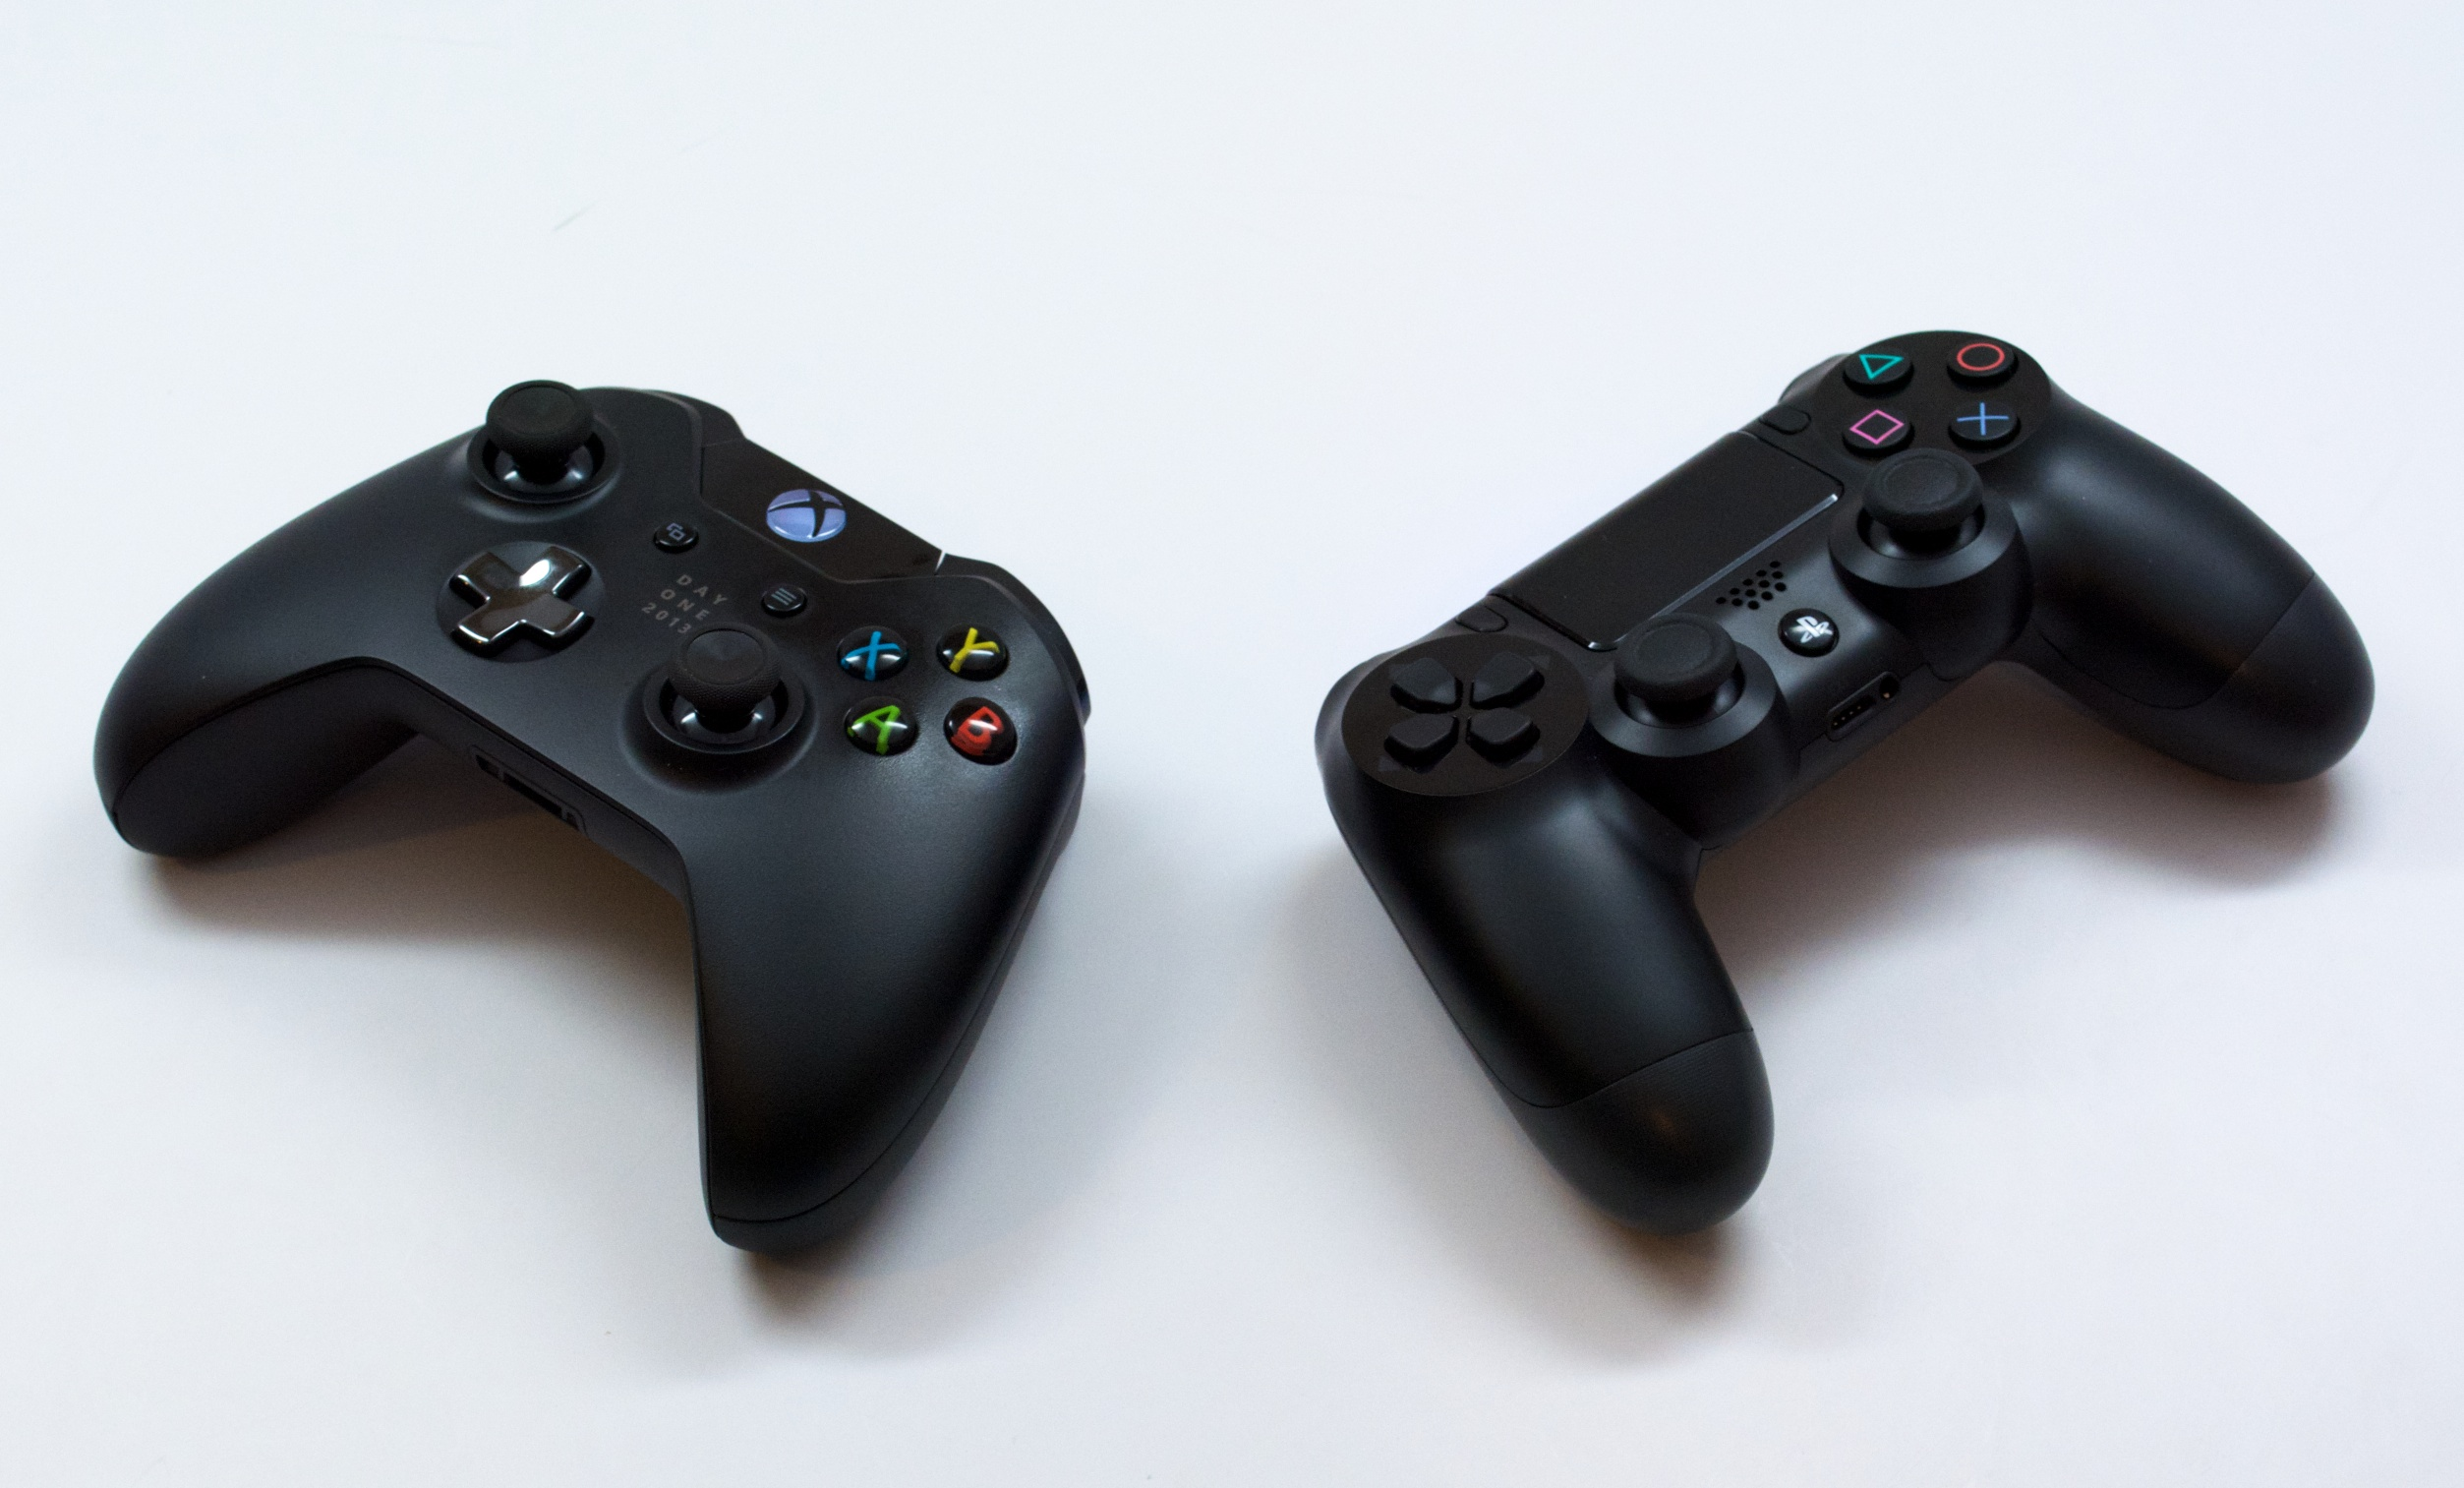 PS4 vs Xbox One: 7 Things Buyers Need to Know